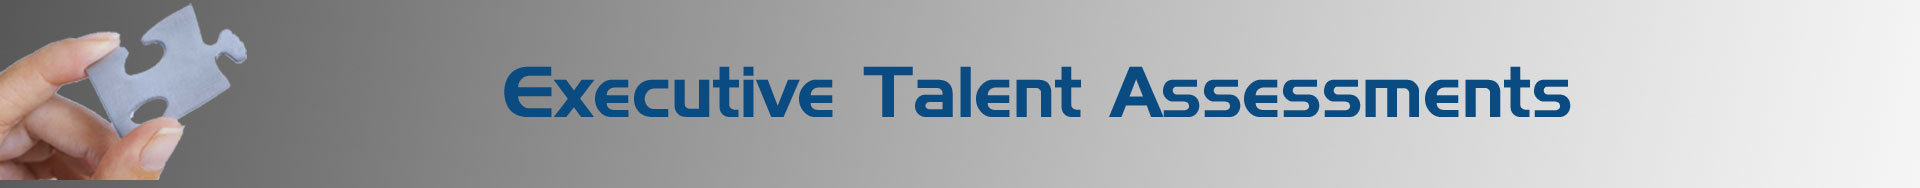 Executive Talent Assessments